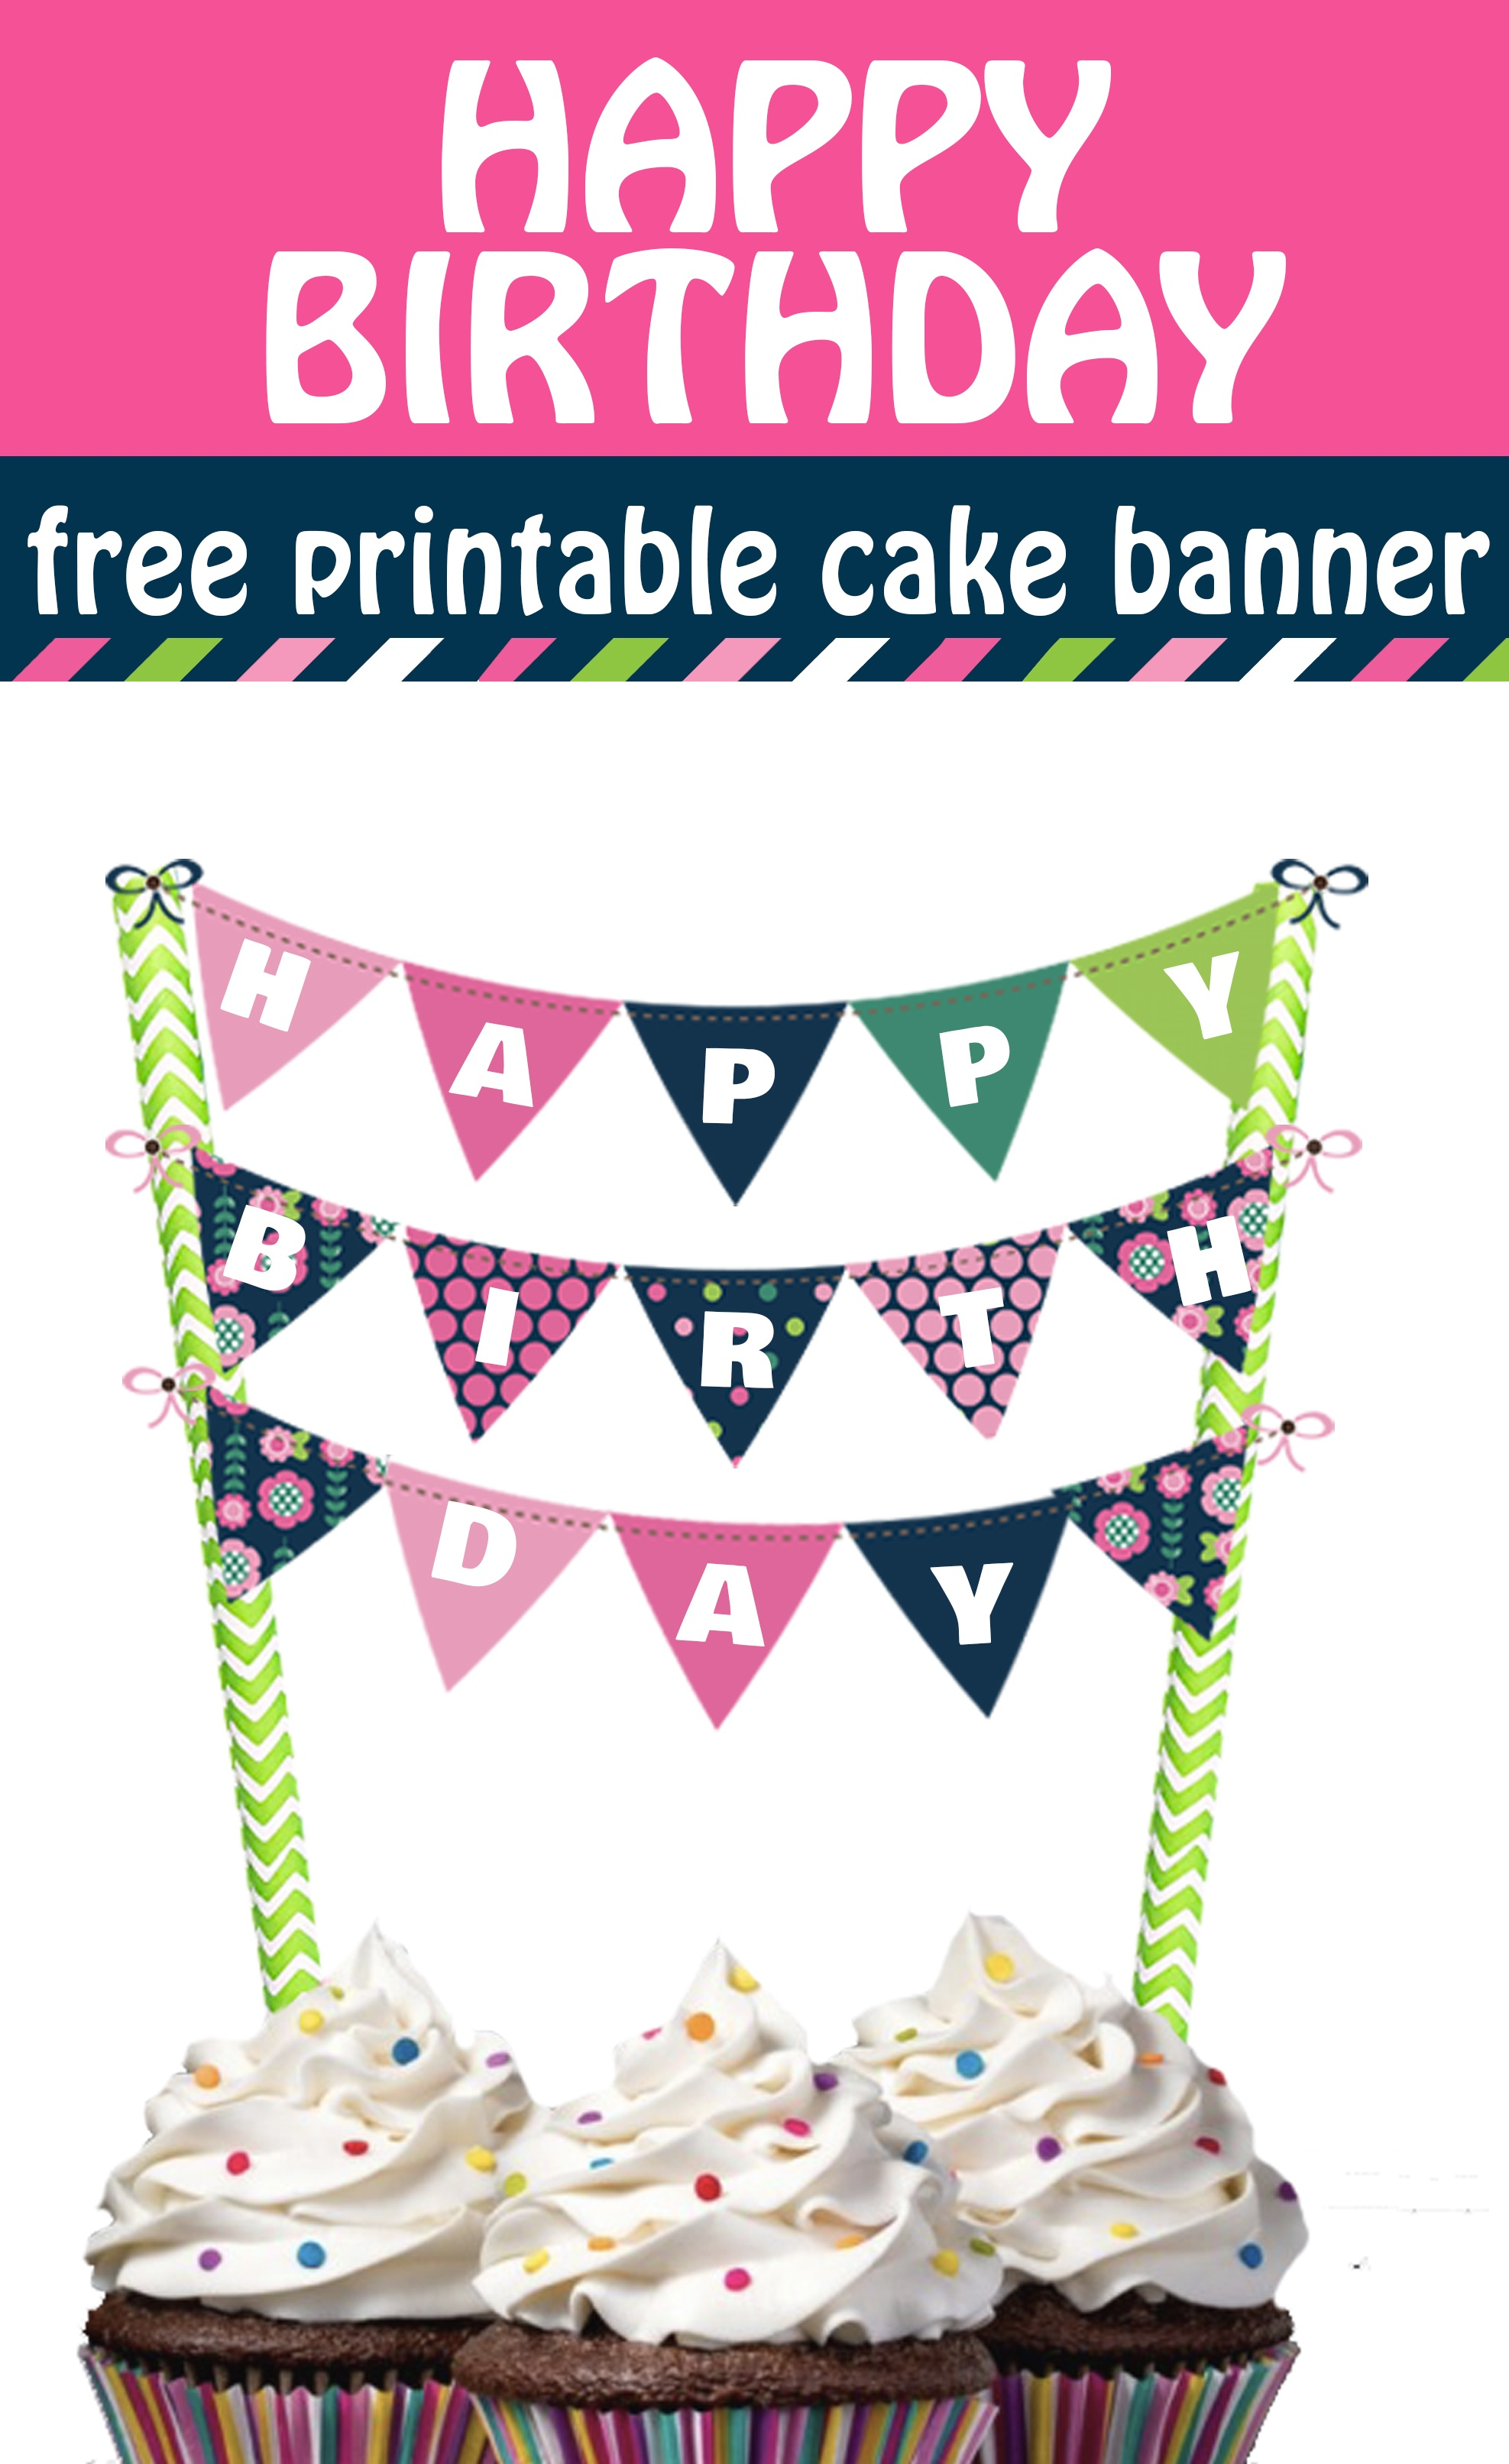 Cheerful And Bright Happy Birthday Cake Banner Free Printable - Free Printable Pictures Of Birthday Cakes